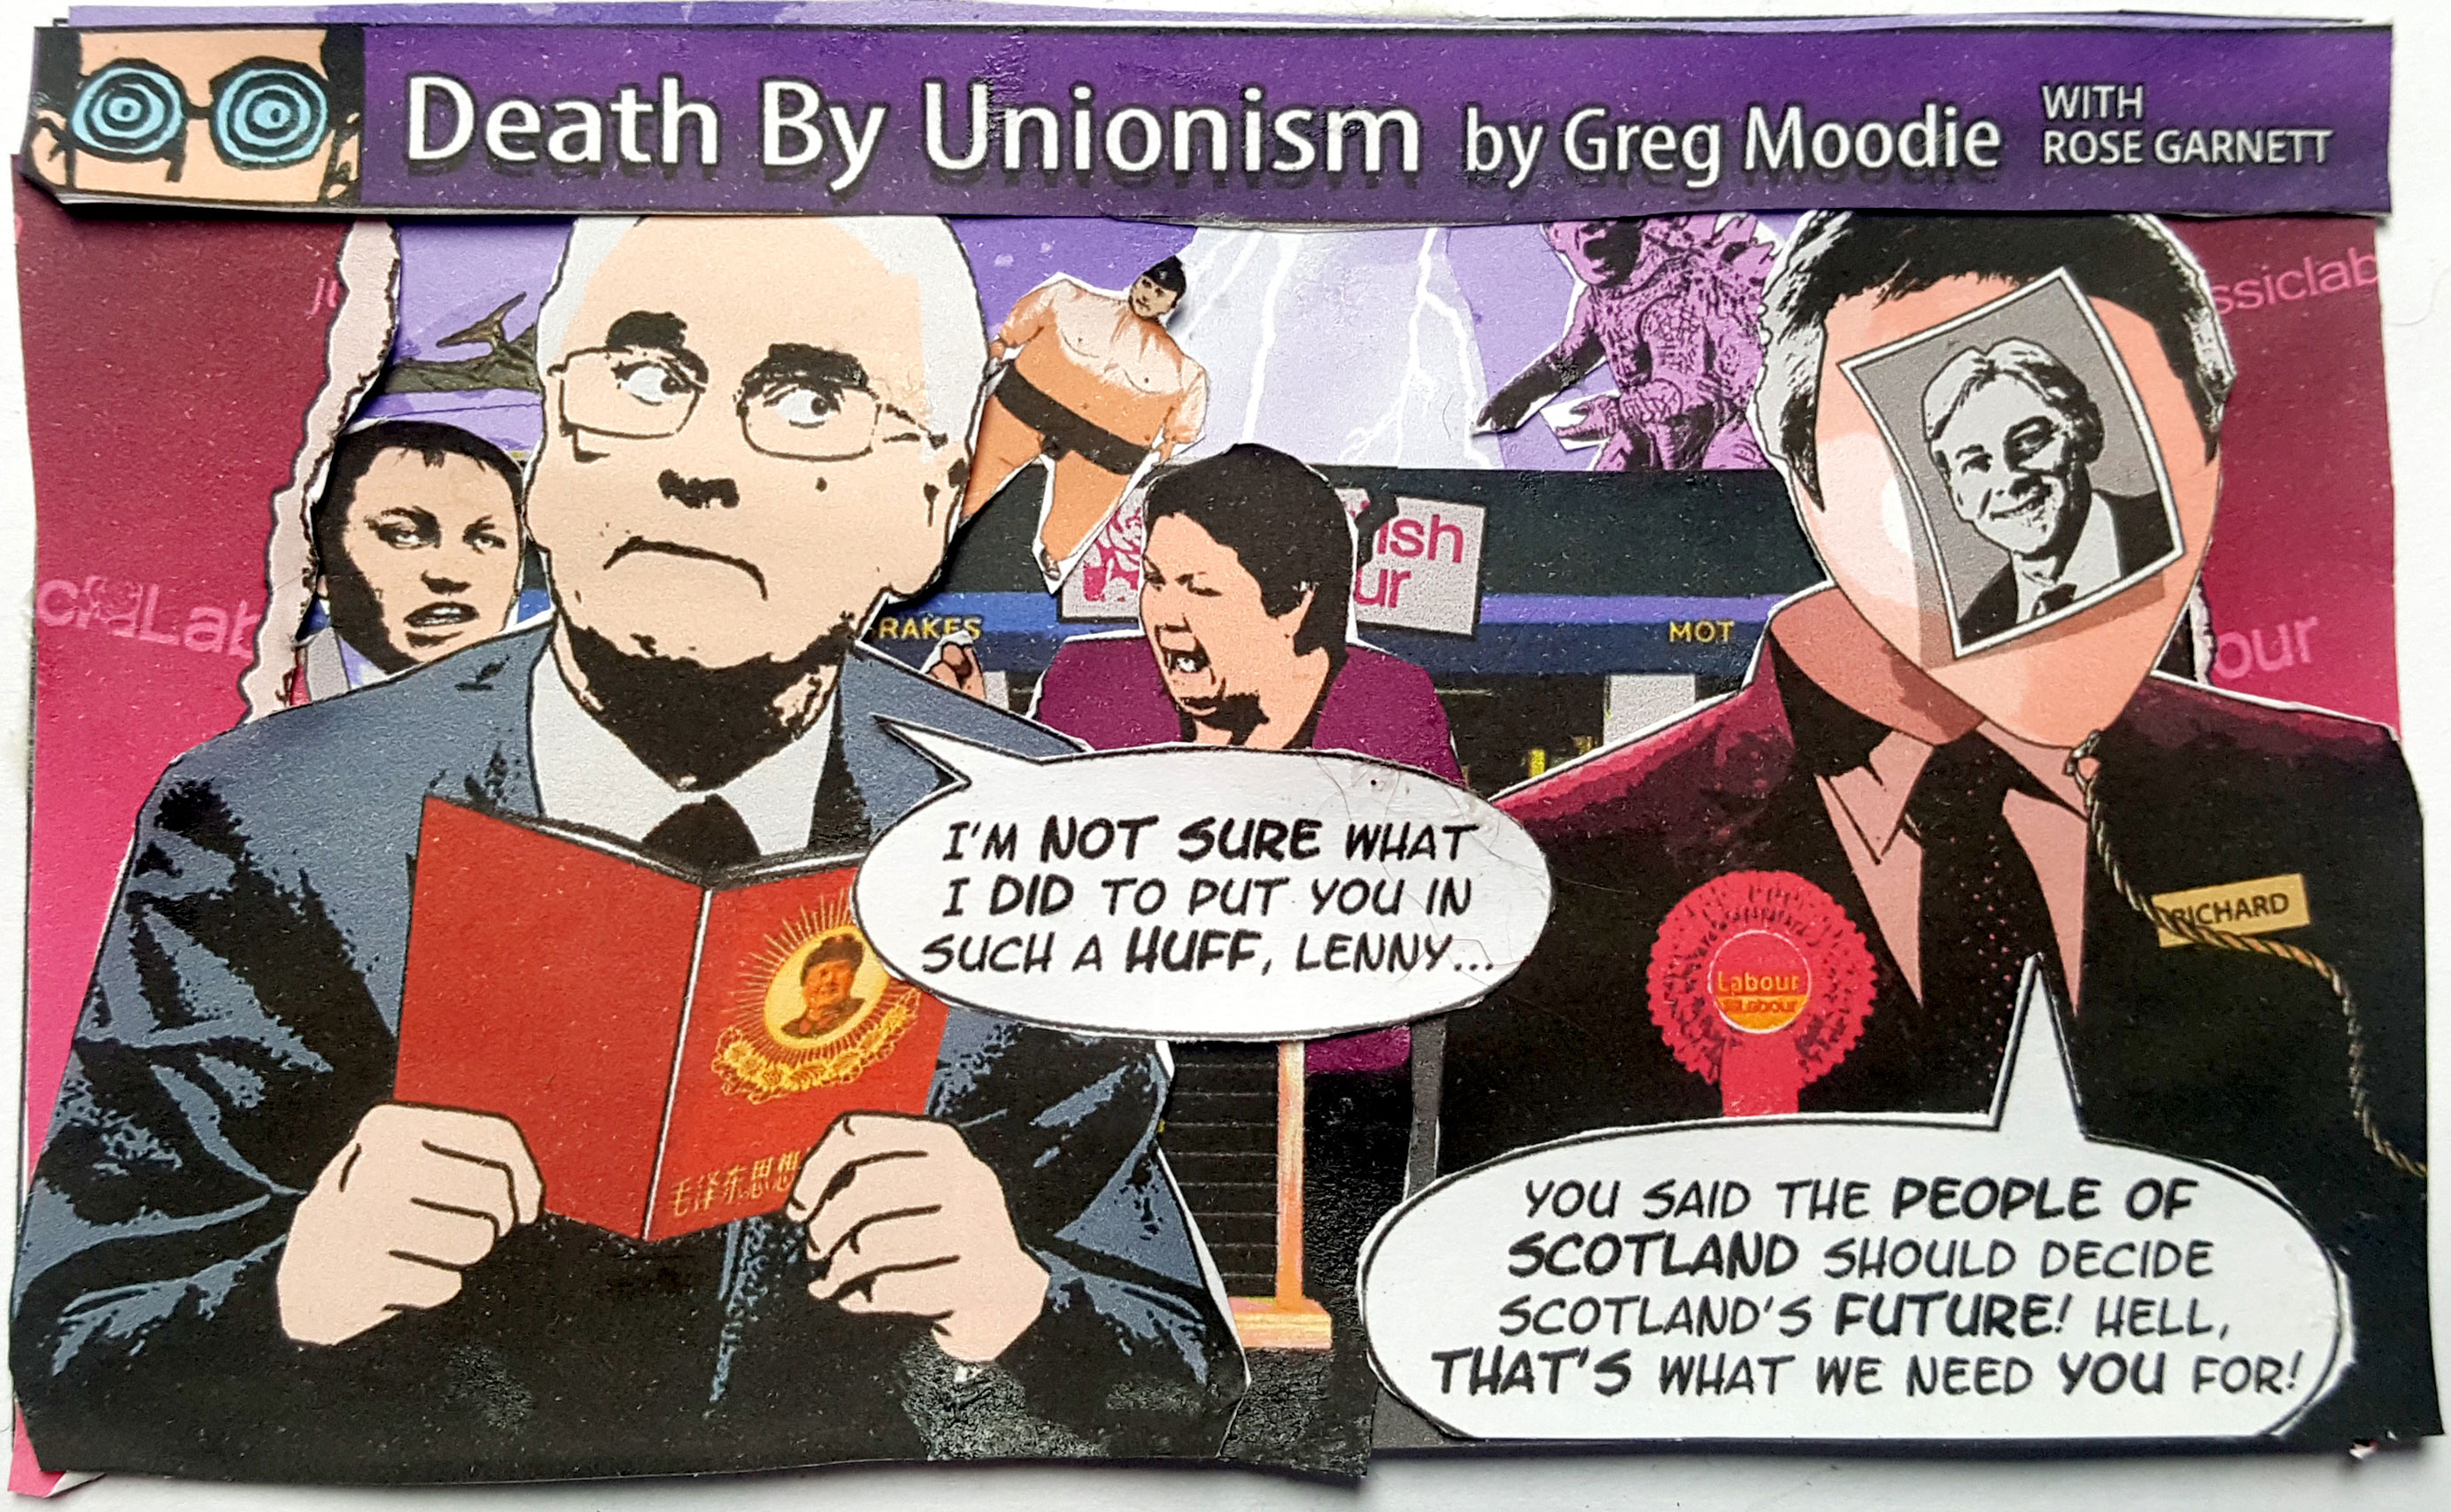 Death By Unionism